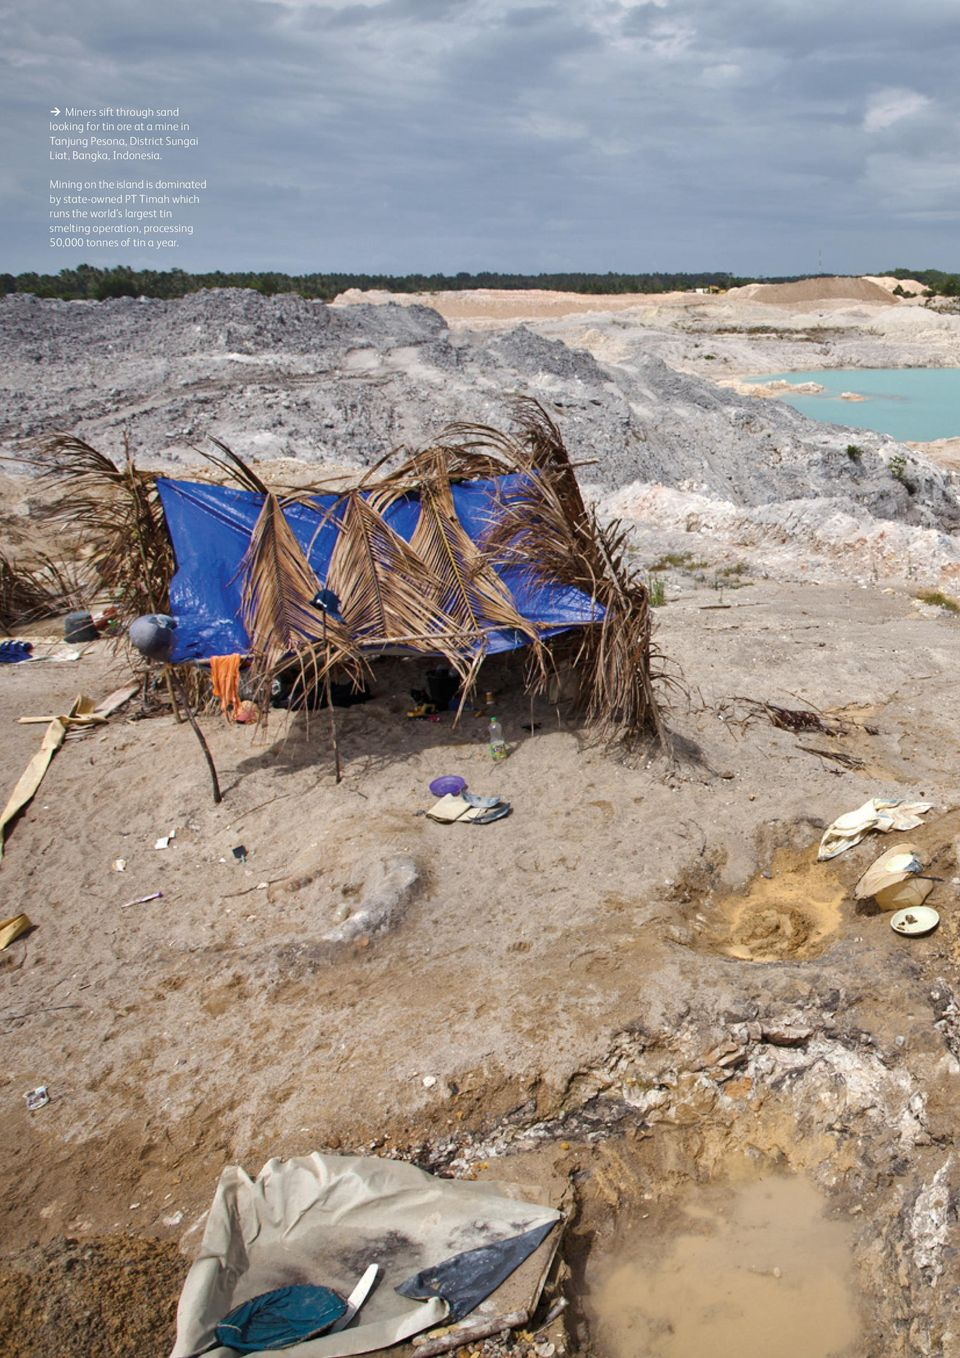 Mining on the island is dominated by state-owned PT Timah which